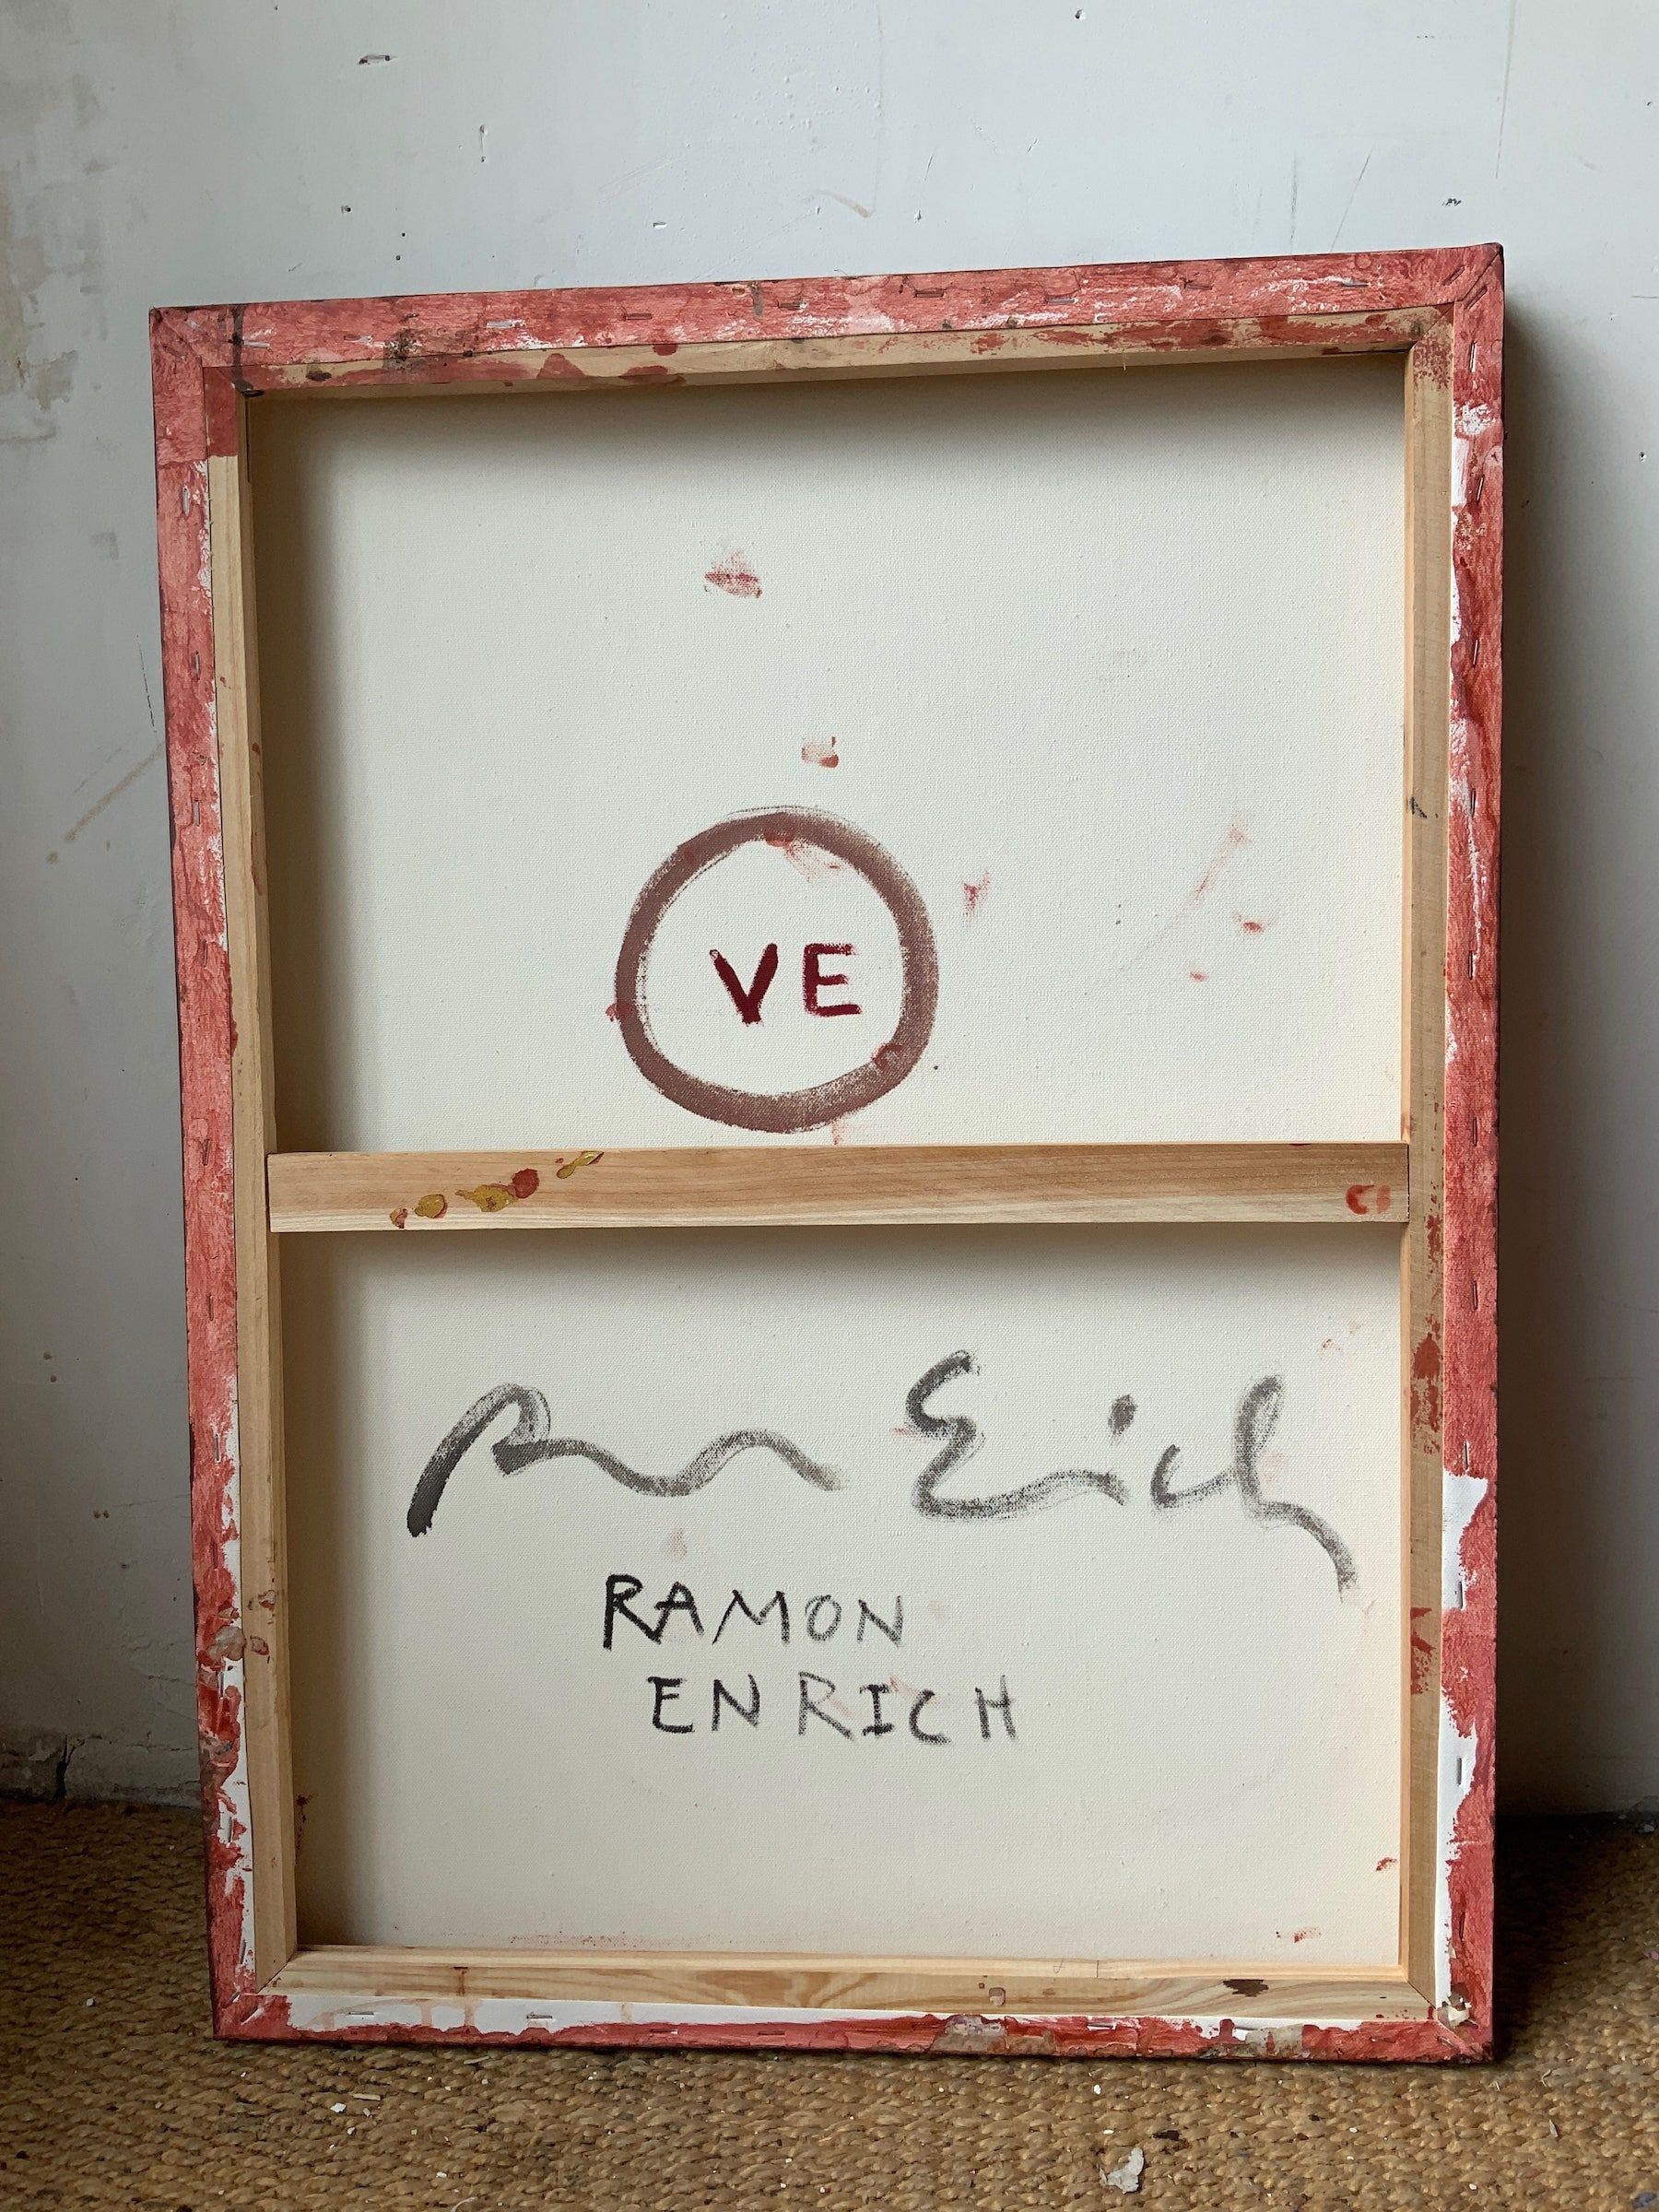 VE,Ramon Enrich,Peinture contemporaine, detail 2